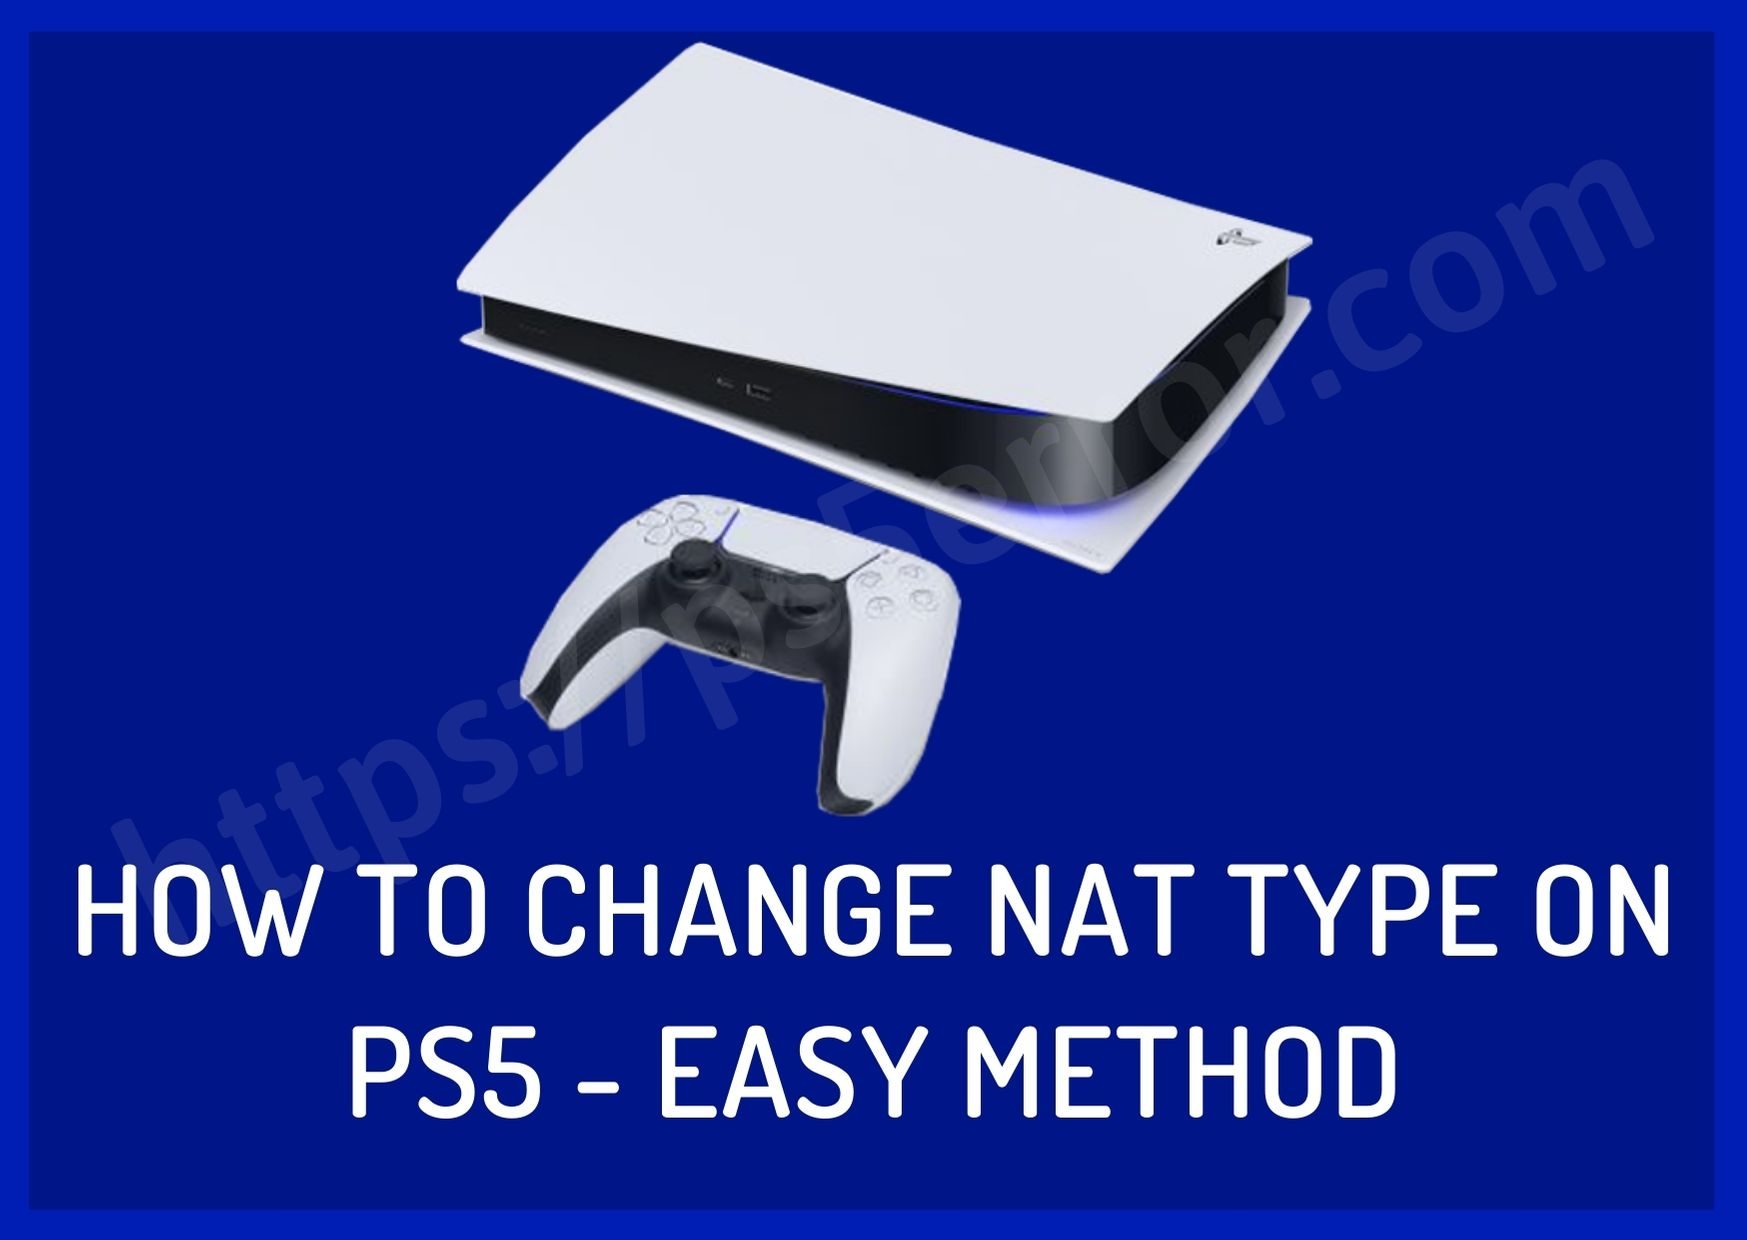 How To Change NAT Type on PS5 - Easy Method